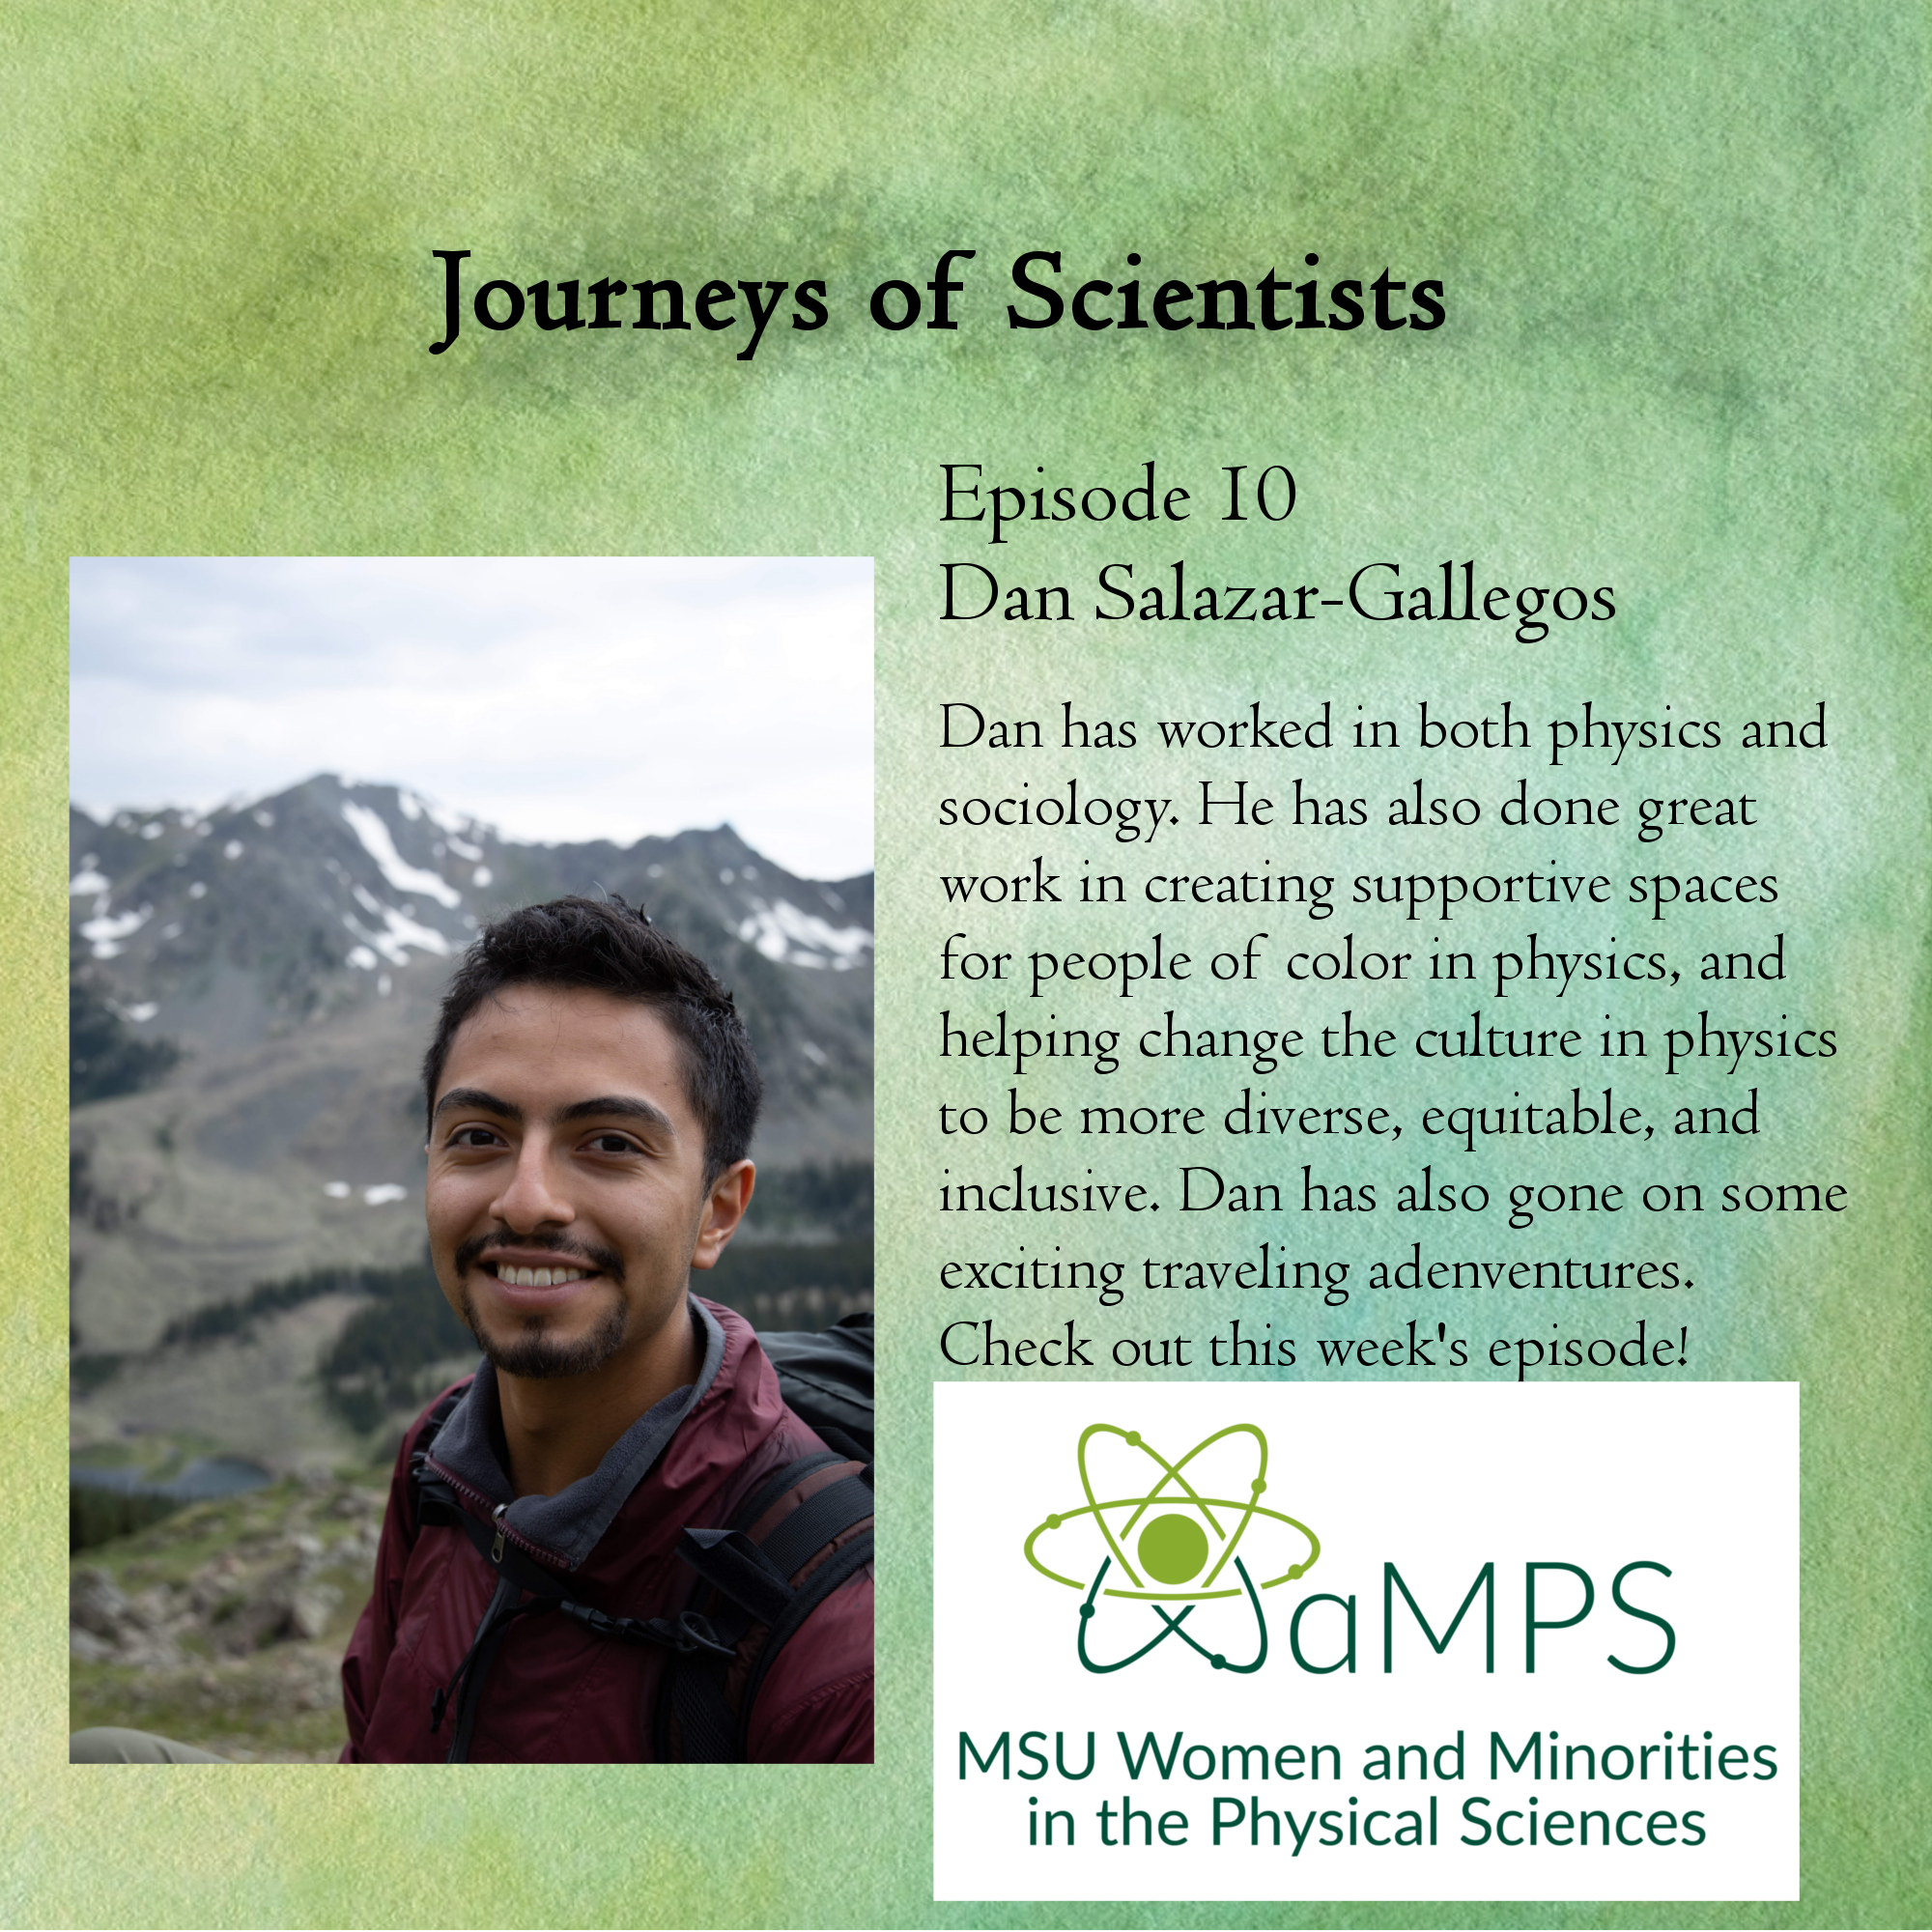 Dan Salazar-Gallegos is a 3rd year physics grad student in high energy physics where he studies dark matter using cosmic gamma-rays + neutrinos  with the HAWC +IceCube experiments. He is also the Vice President of  WaMPS. Dan talks about his undergraduate involvement in both physics and  sociology research labs, involvement with diversity, equity, and  inclusion, and the many traveling adventures he has gone on!